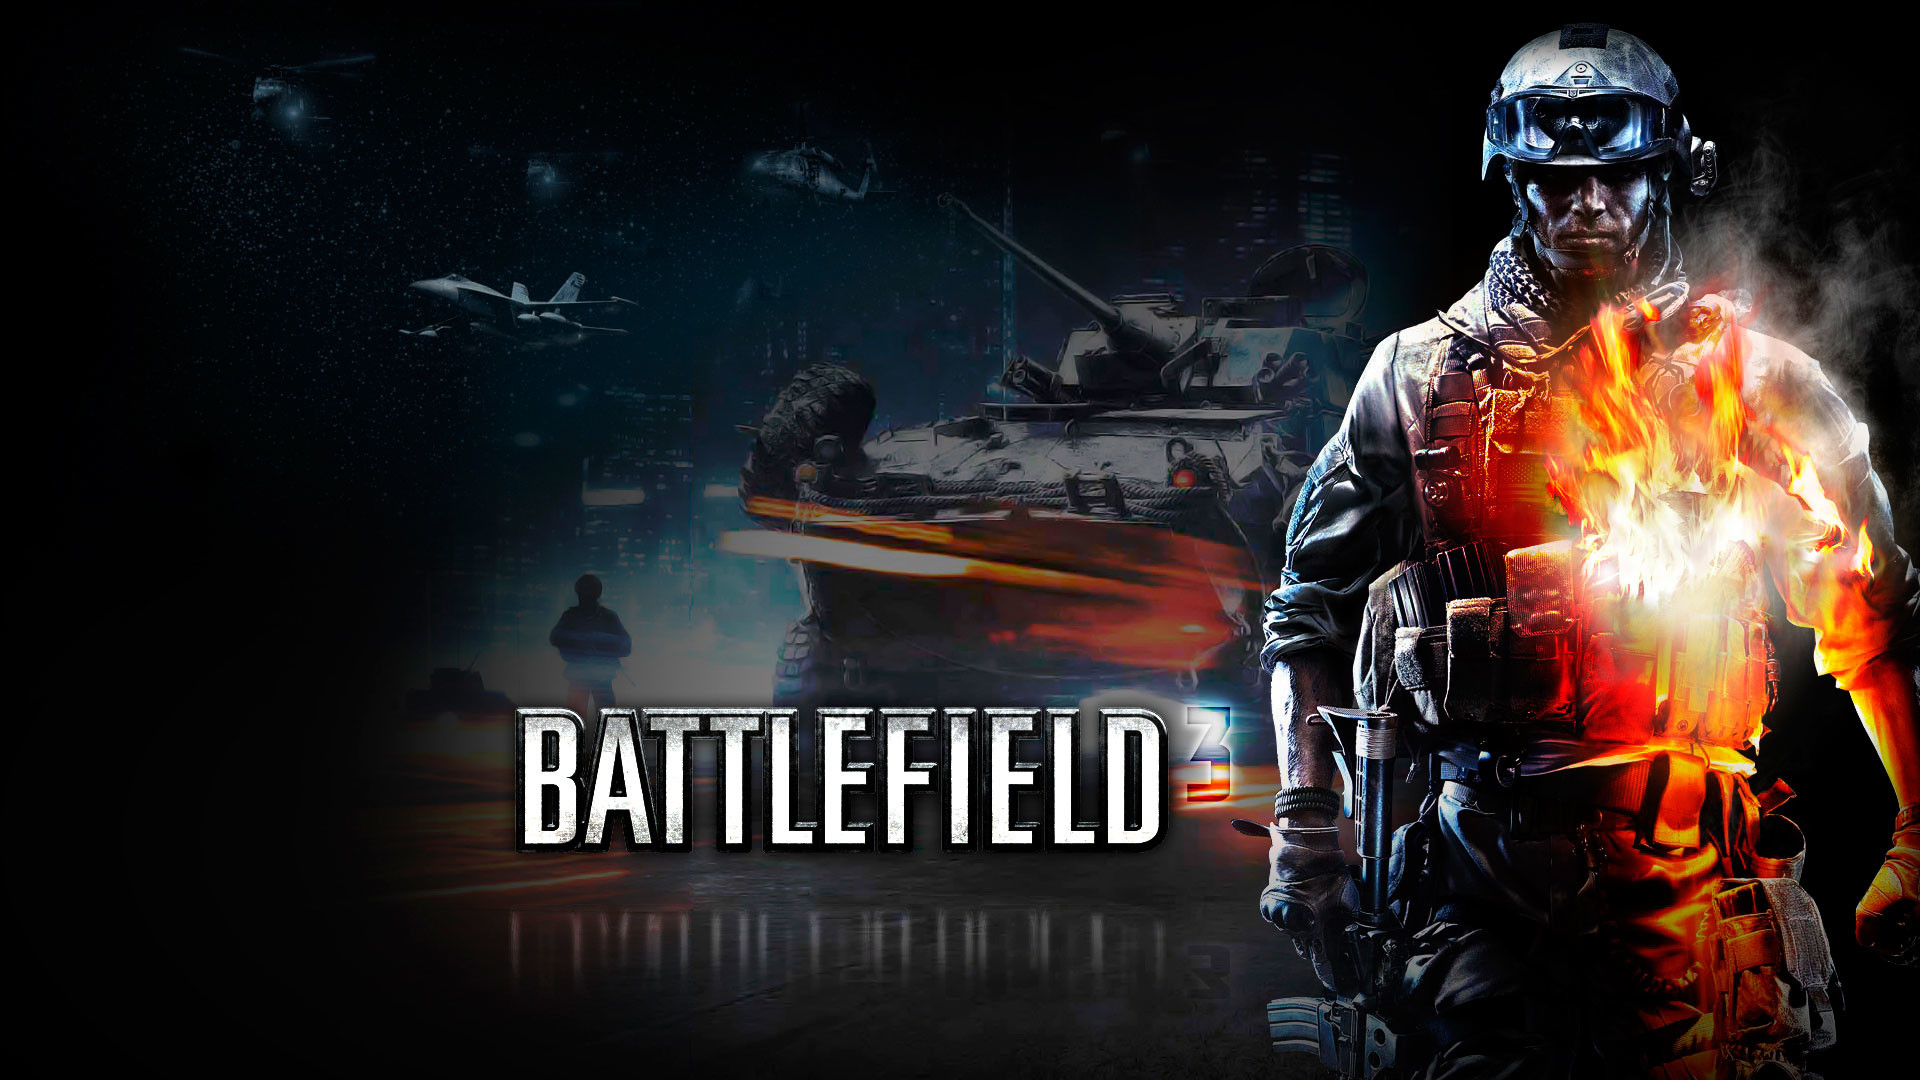 Res: 1920x1080, 15 (16 Amazing Battlefield 3 Theme HD Wallpapers)